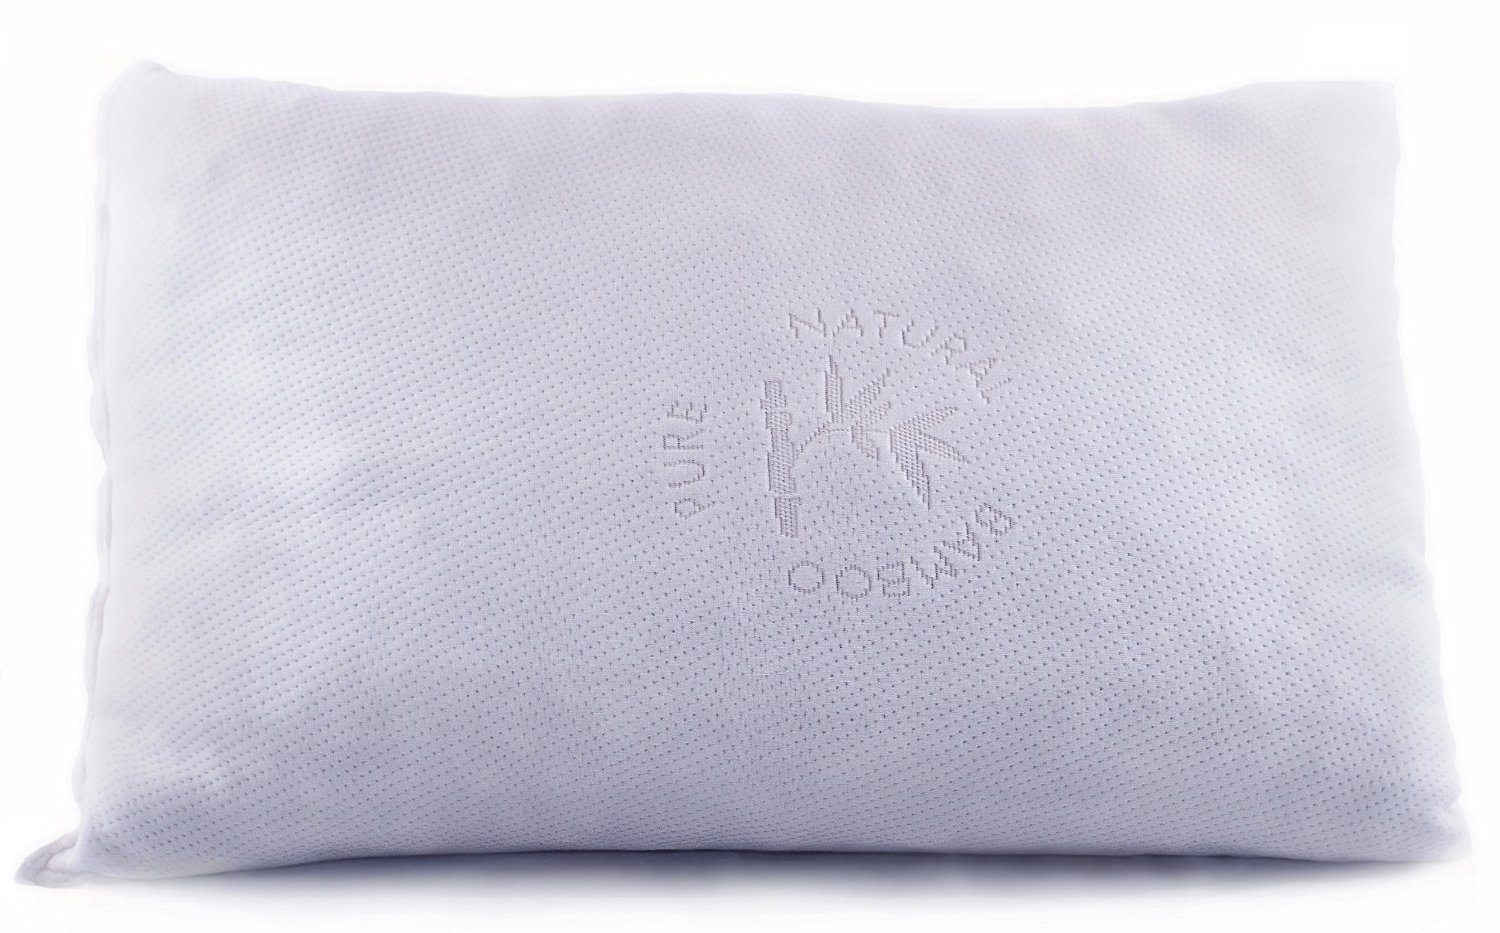 Shredded memory foam pillow by Good Life Essentials